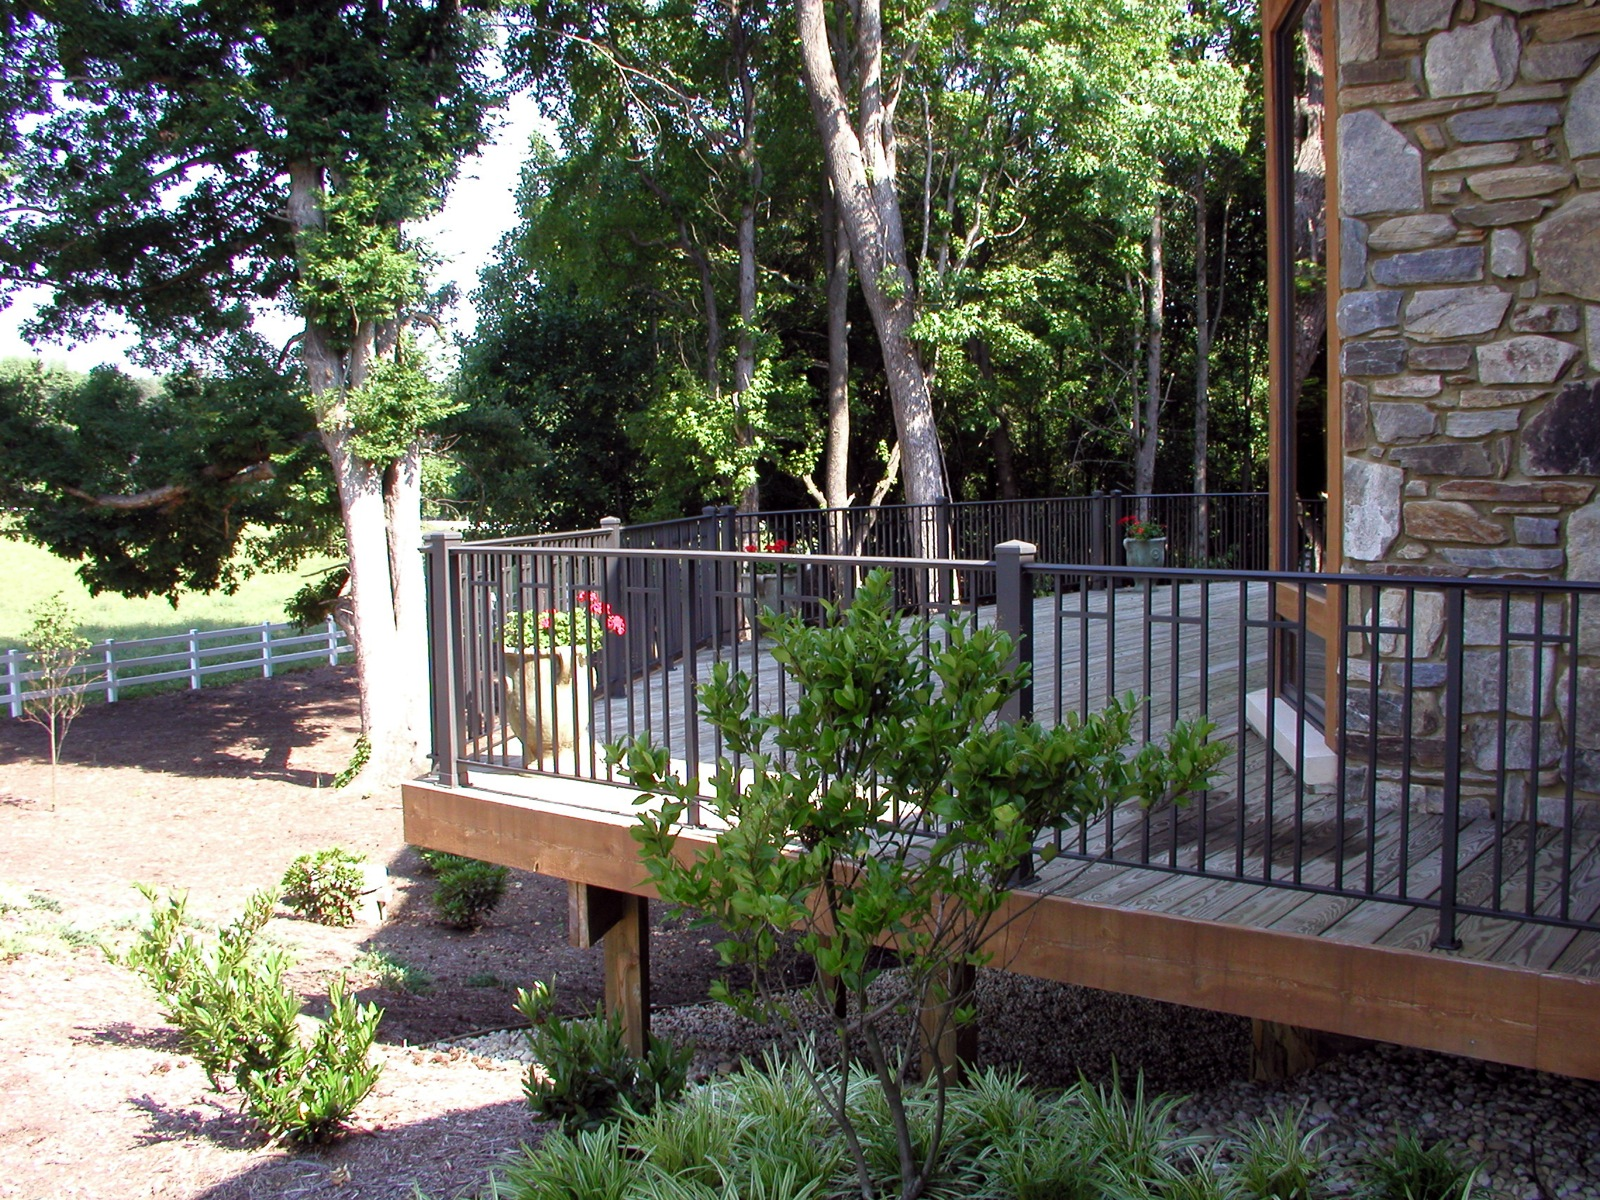 Ironlike deck rail with horizontal pickets in-between the vertical pickets. Both 3in. and 1.25in